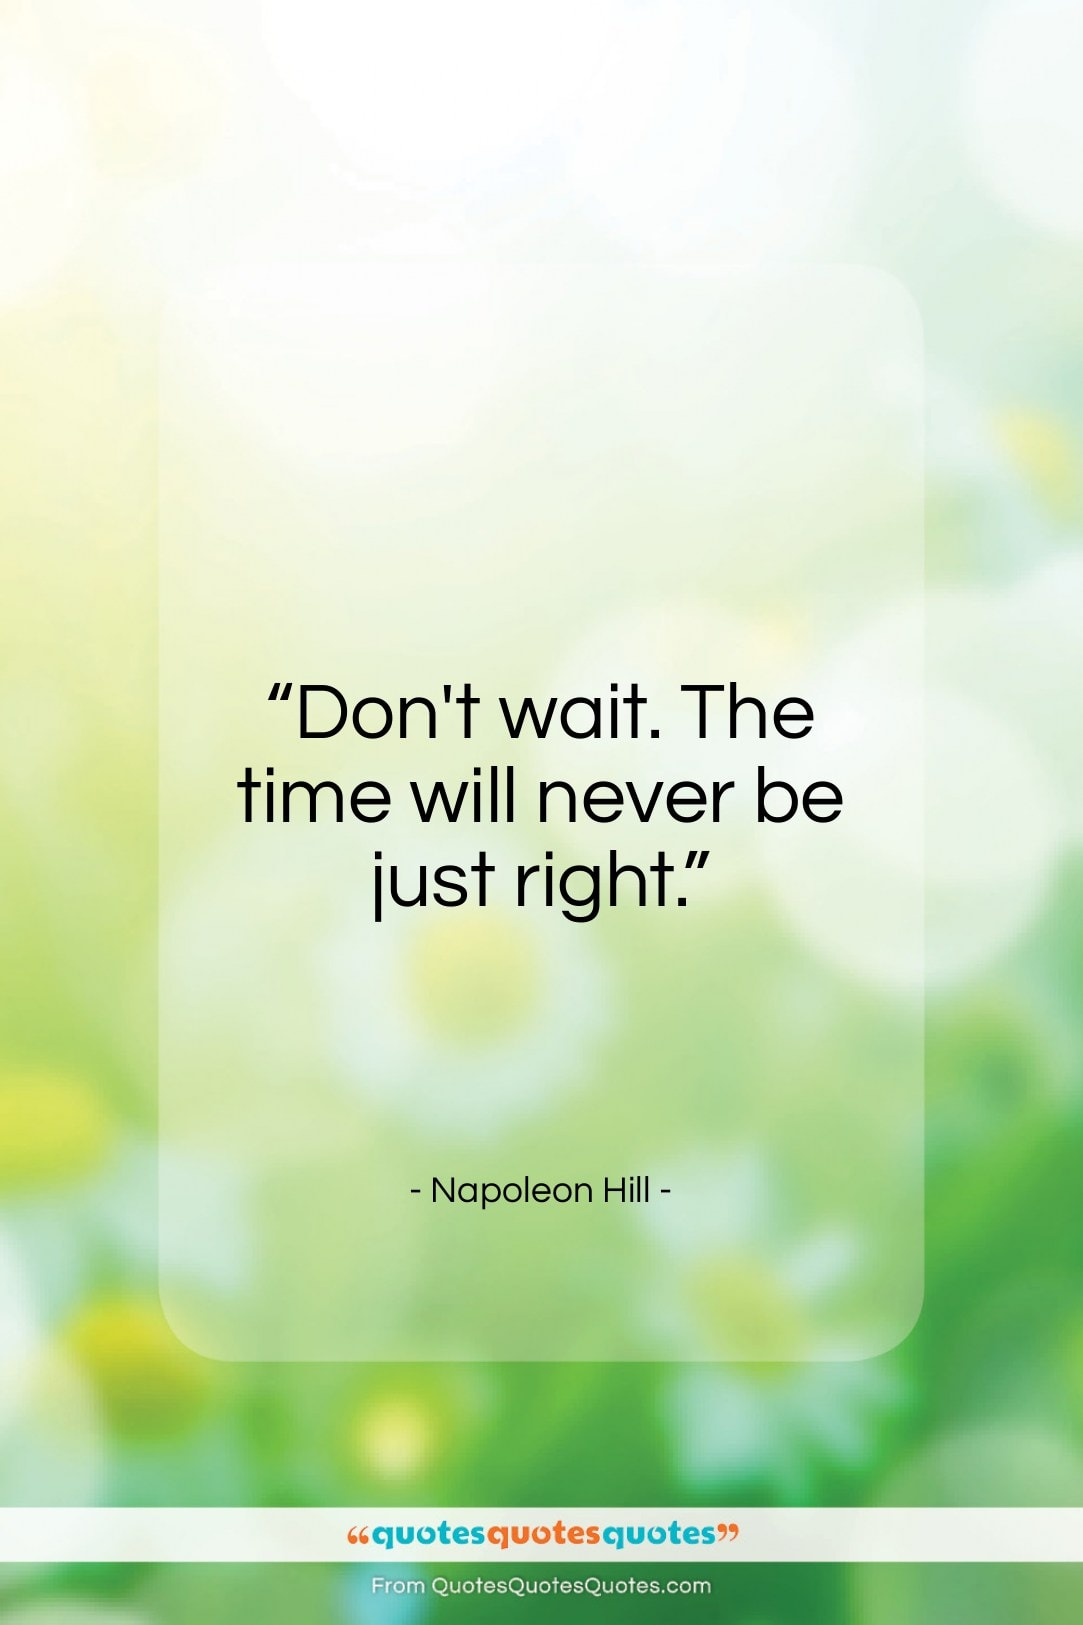 Get The Whole Napoleon Hill Quote Dont Wait The Time Will Never